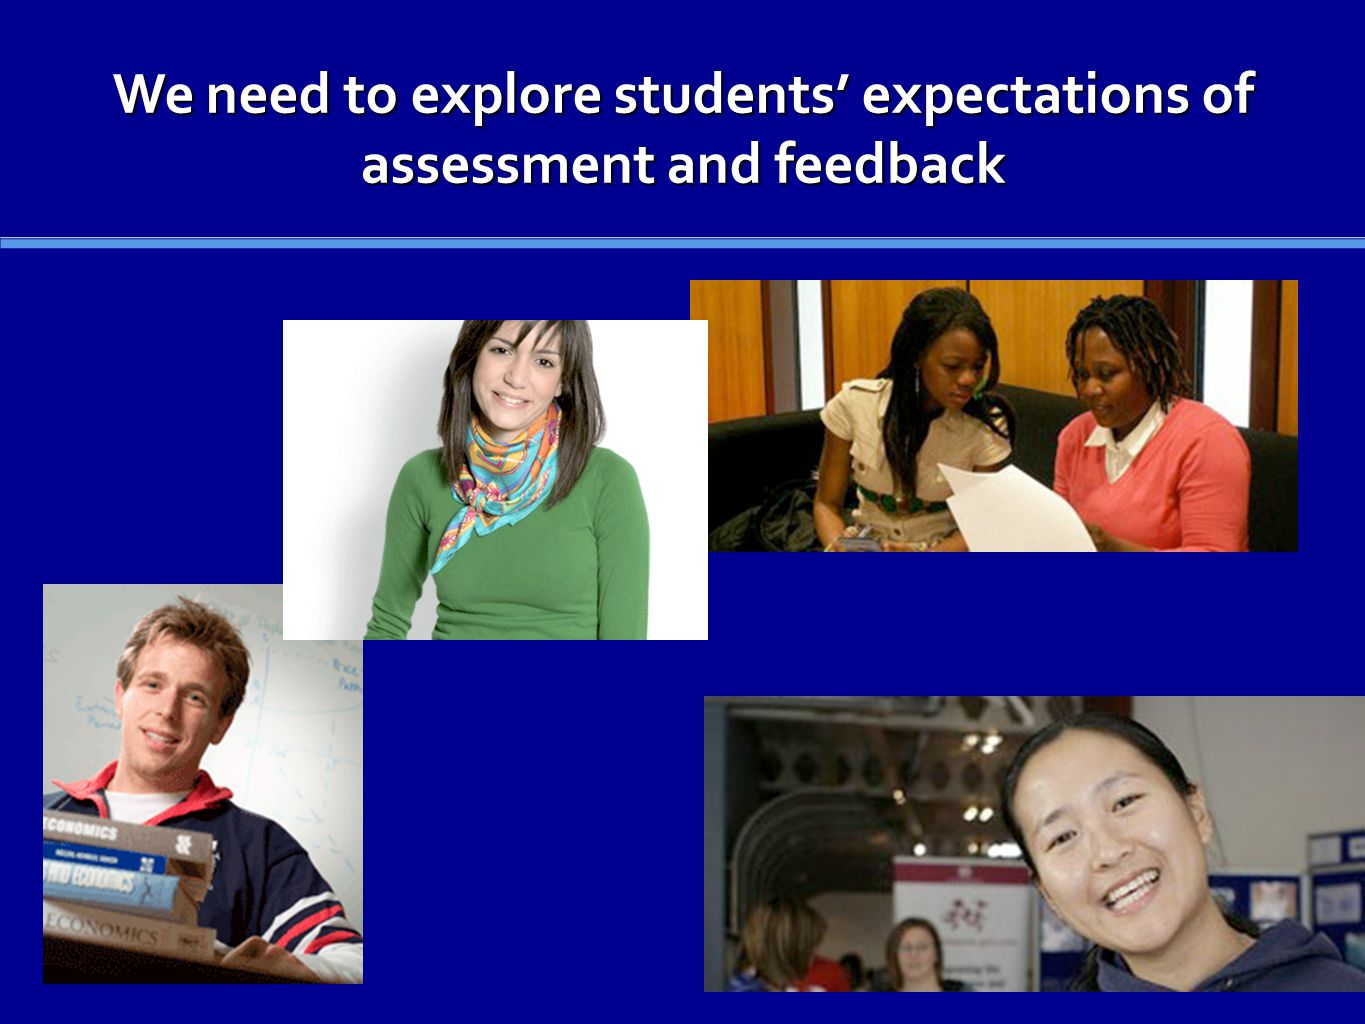 We need to explore students expectations of assessment and feedback